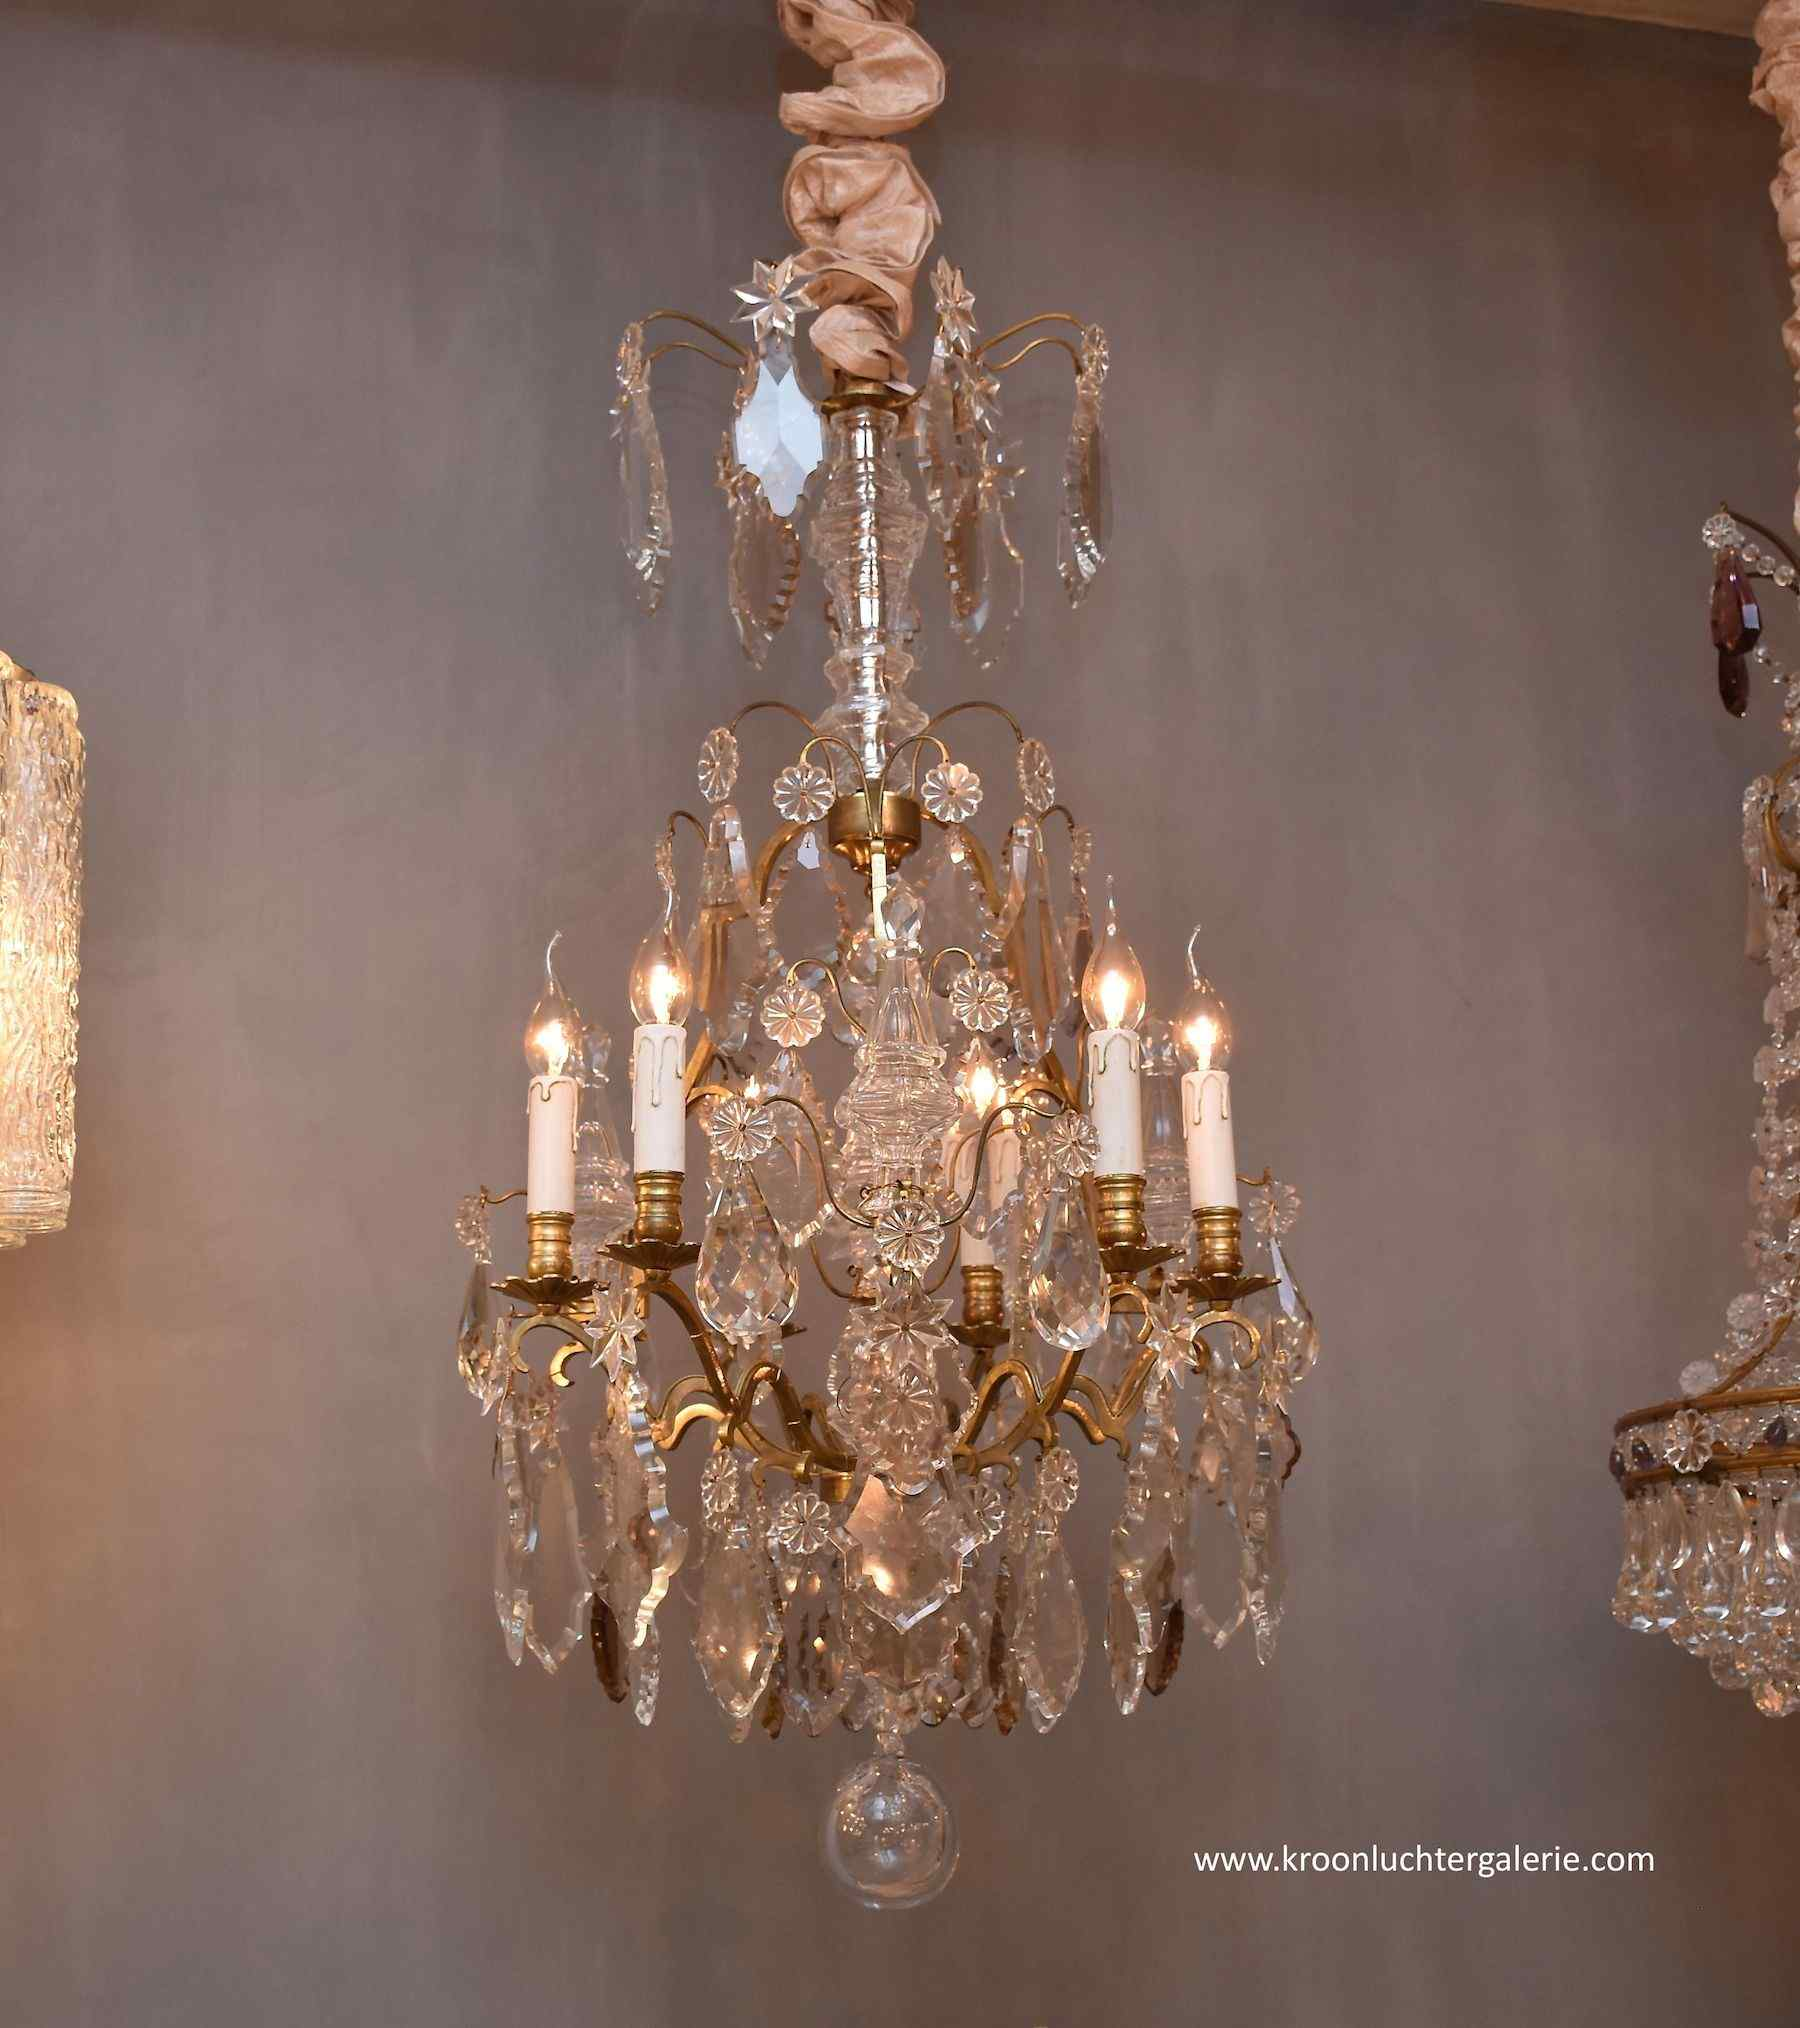 French chandelier in the style of Louis XV